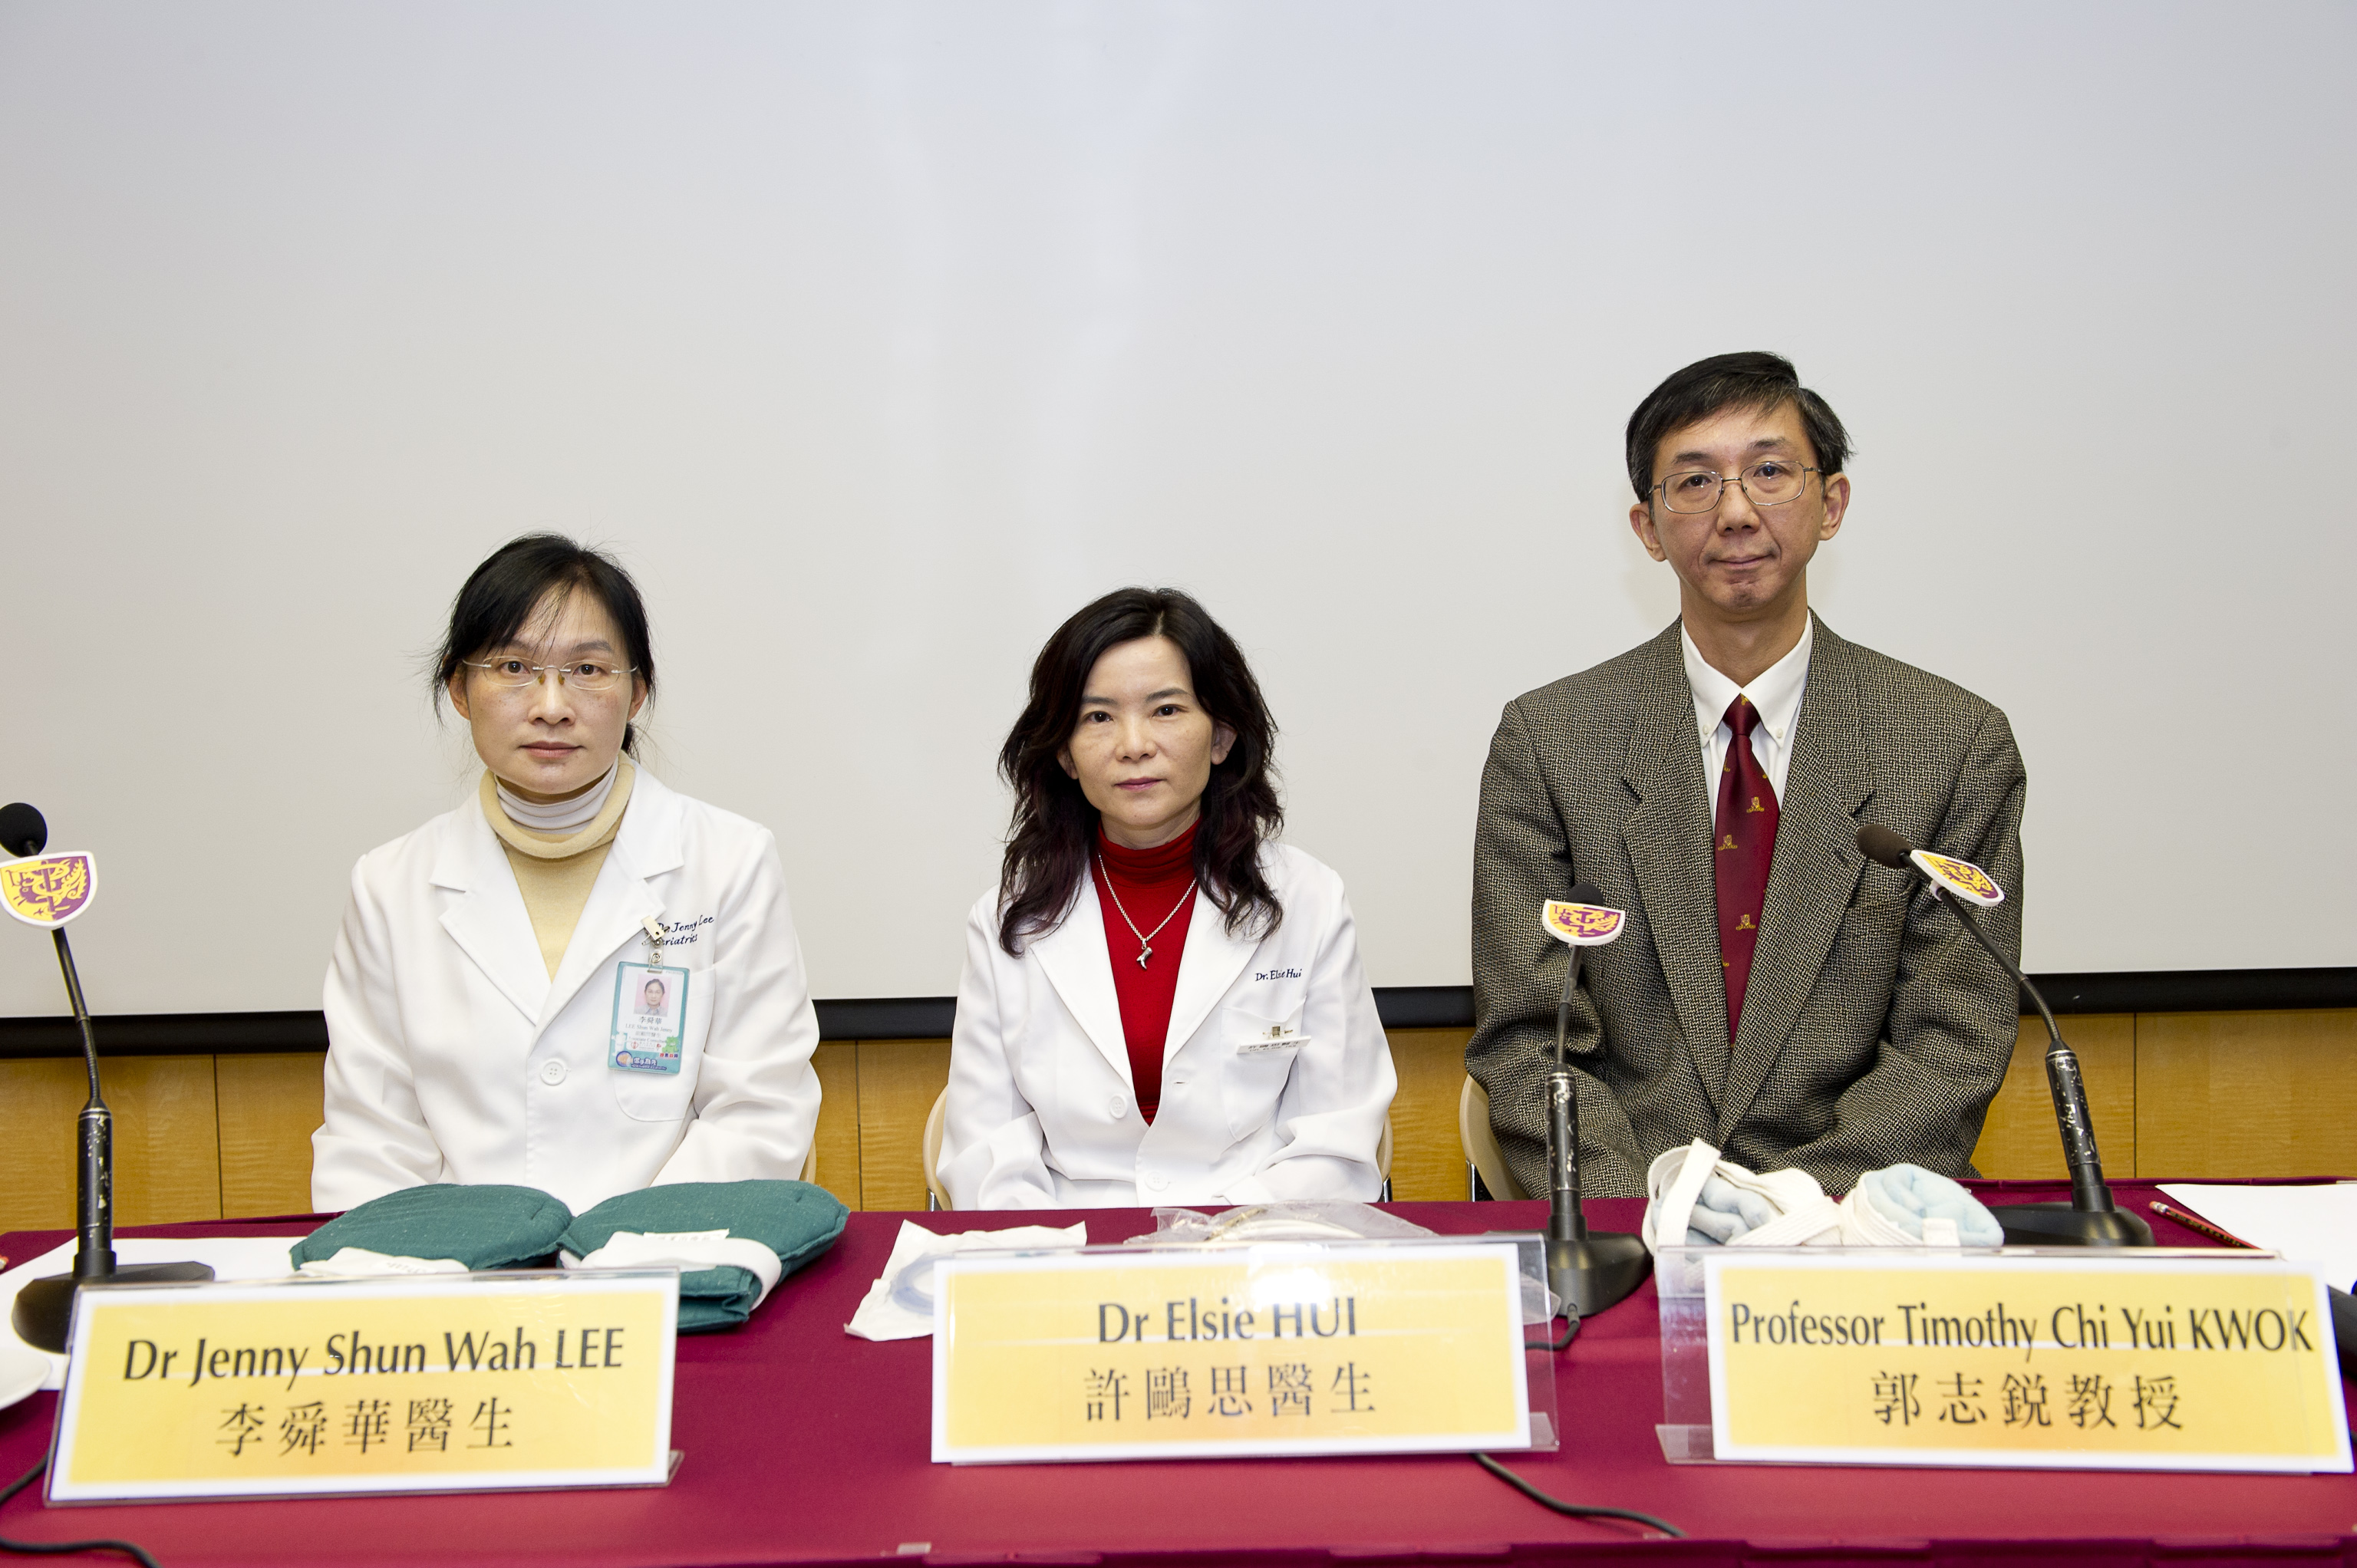 (From Left) Dr Jenny Shun Wah LEE, Associate Consultant, Department of Medicine and Geriatrics, Shatin Hospital; Dr Elsie HUI, Chief of Service, Department of Medicine and Geriatrics, Shatin Hospital; and Professor Timothy Chi Yui KWOK, Professor, Division of Geriatrics, Department of Medicine and Therapeutics, CUHK